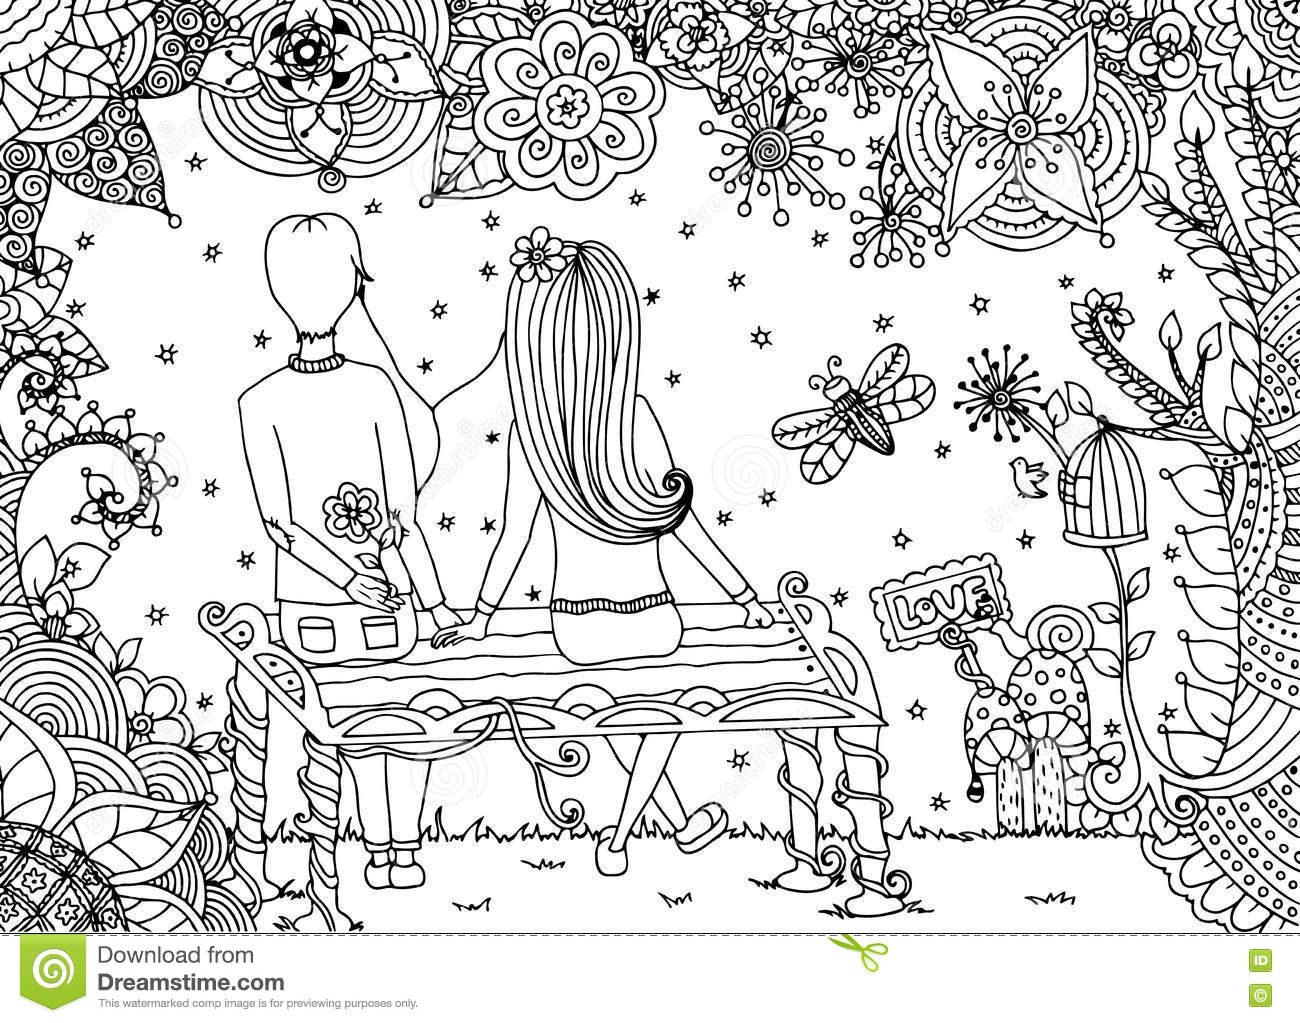 sitting on a bench coloring page stock illustration image